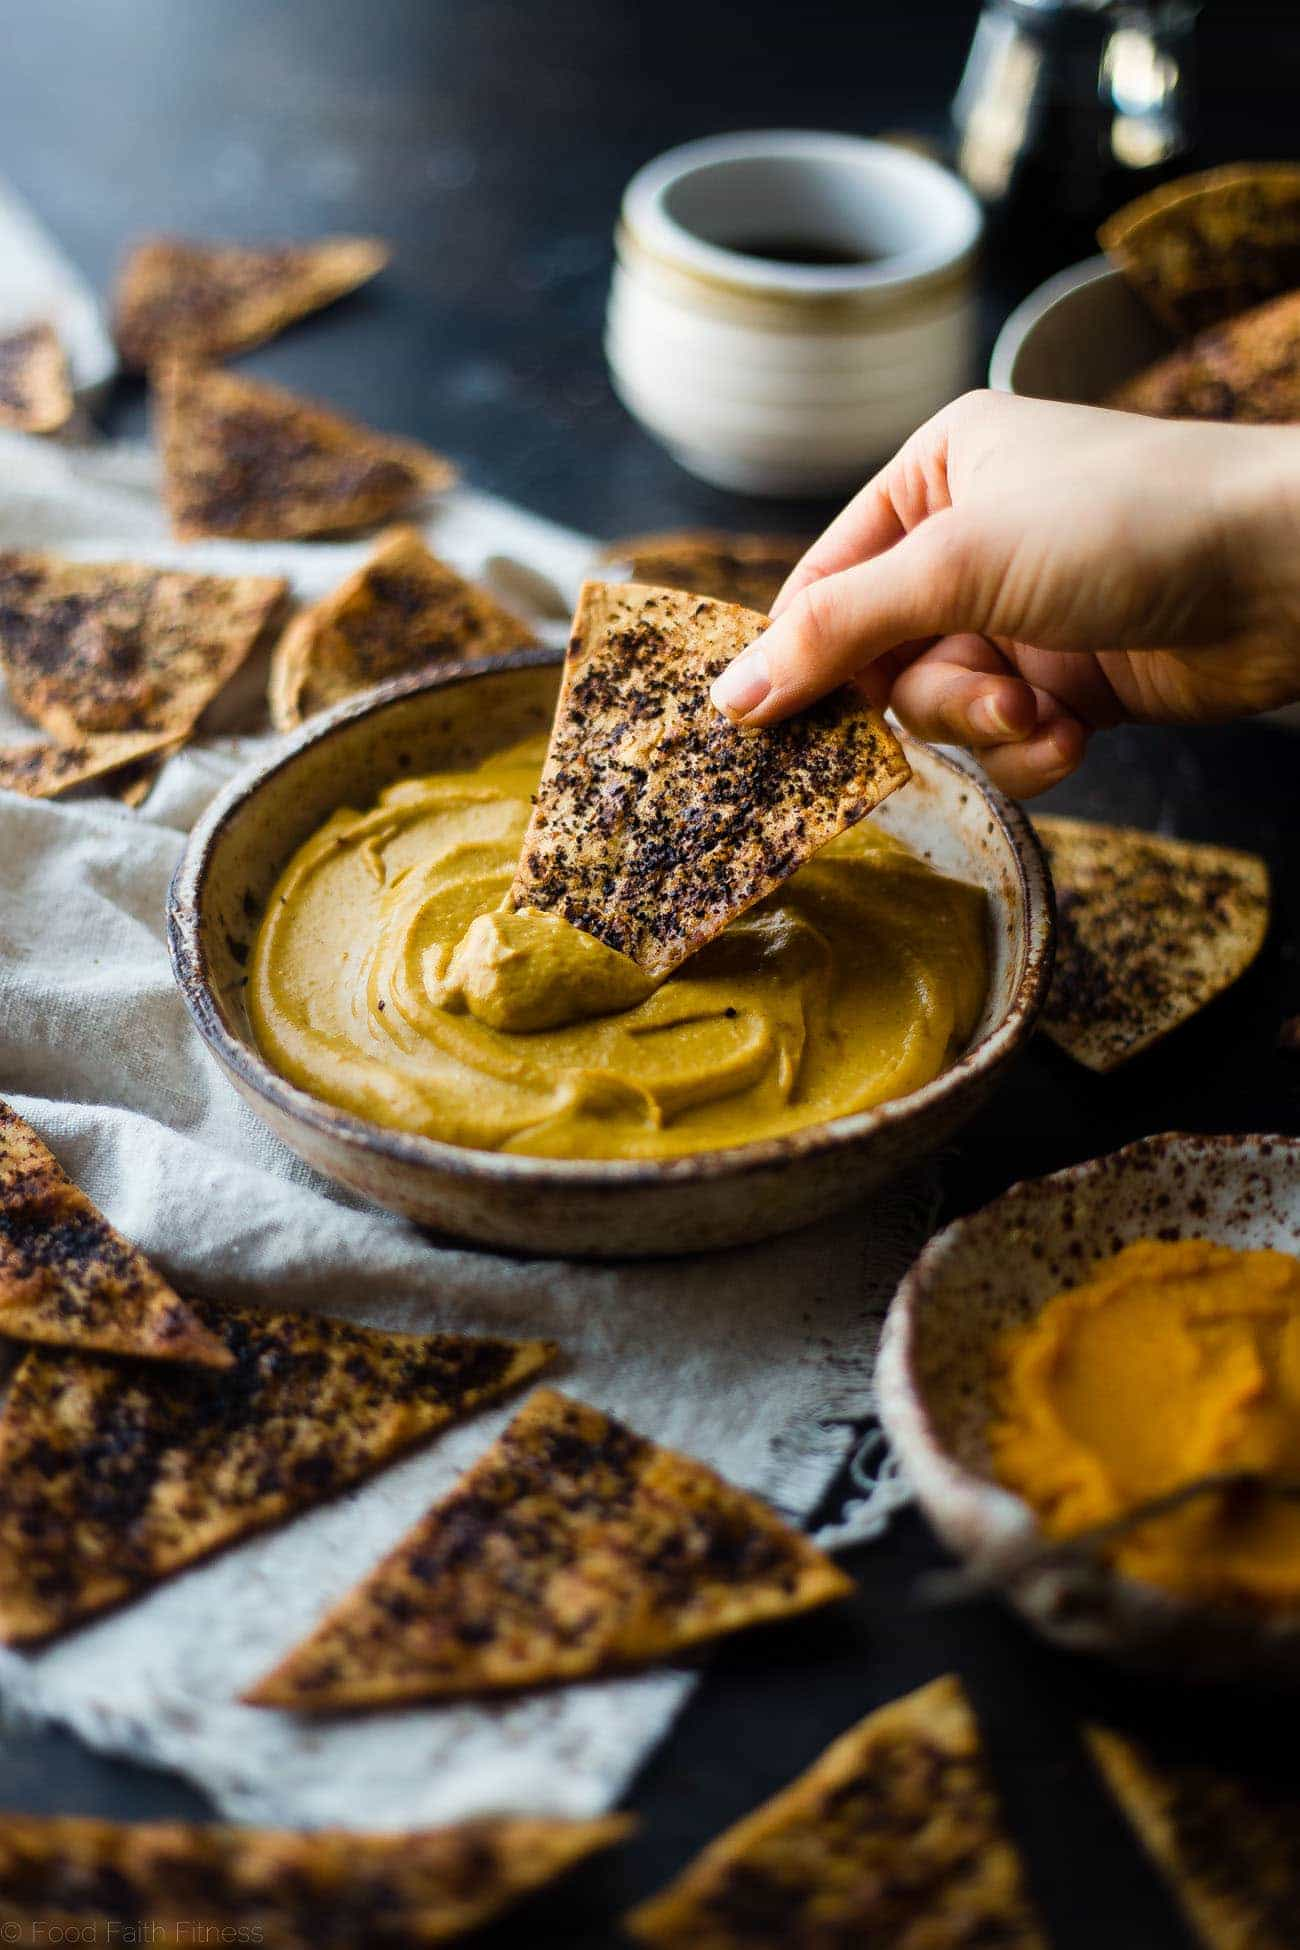 Vegan Pumpkin Spice Latte Dip - This easy healthy pumpkin pie dip is served with baked coffee chips so it tastes like a pumpkin spice latte! It's a healthy holiday dessert that is so simple to make! | Foodfaithfitness.com | @FoodFaithFIt